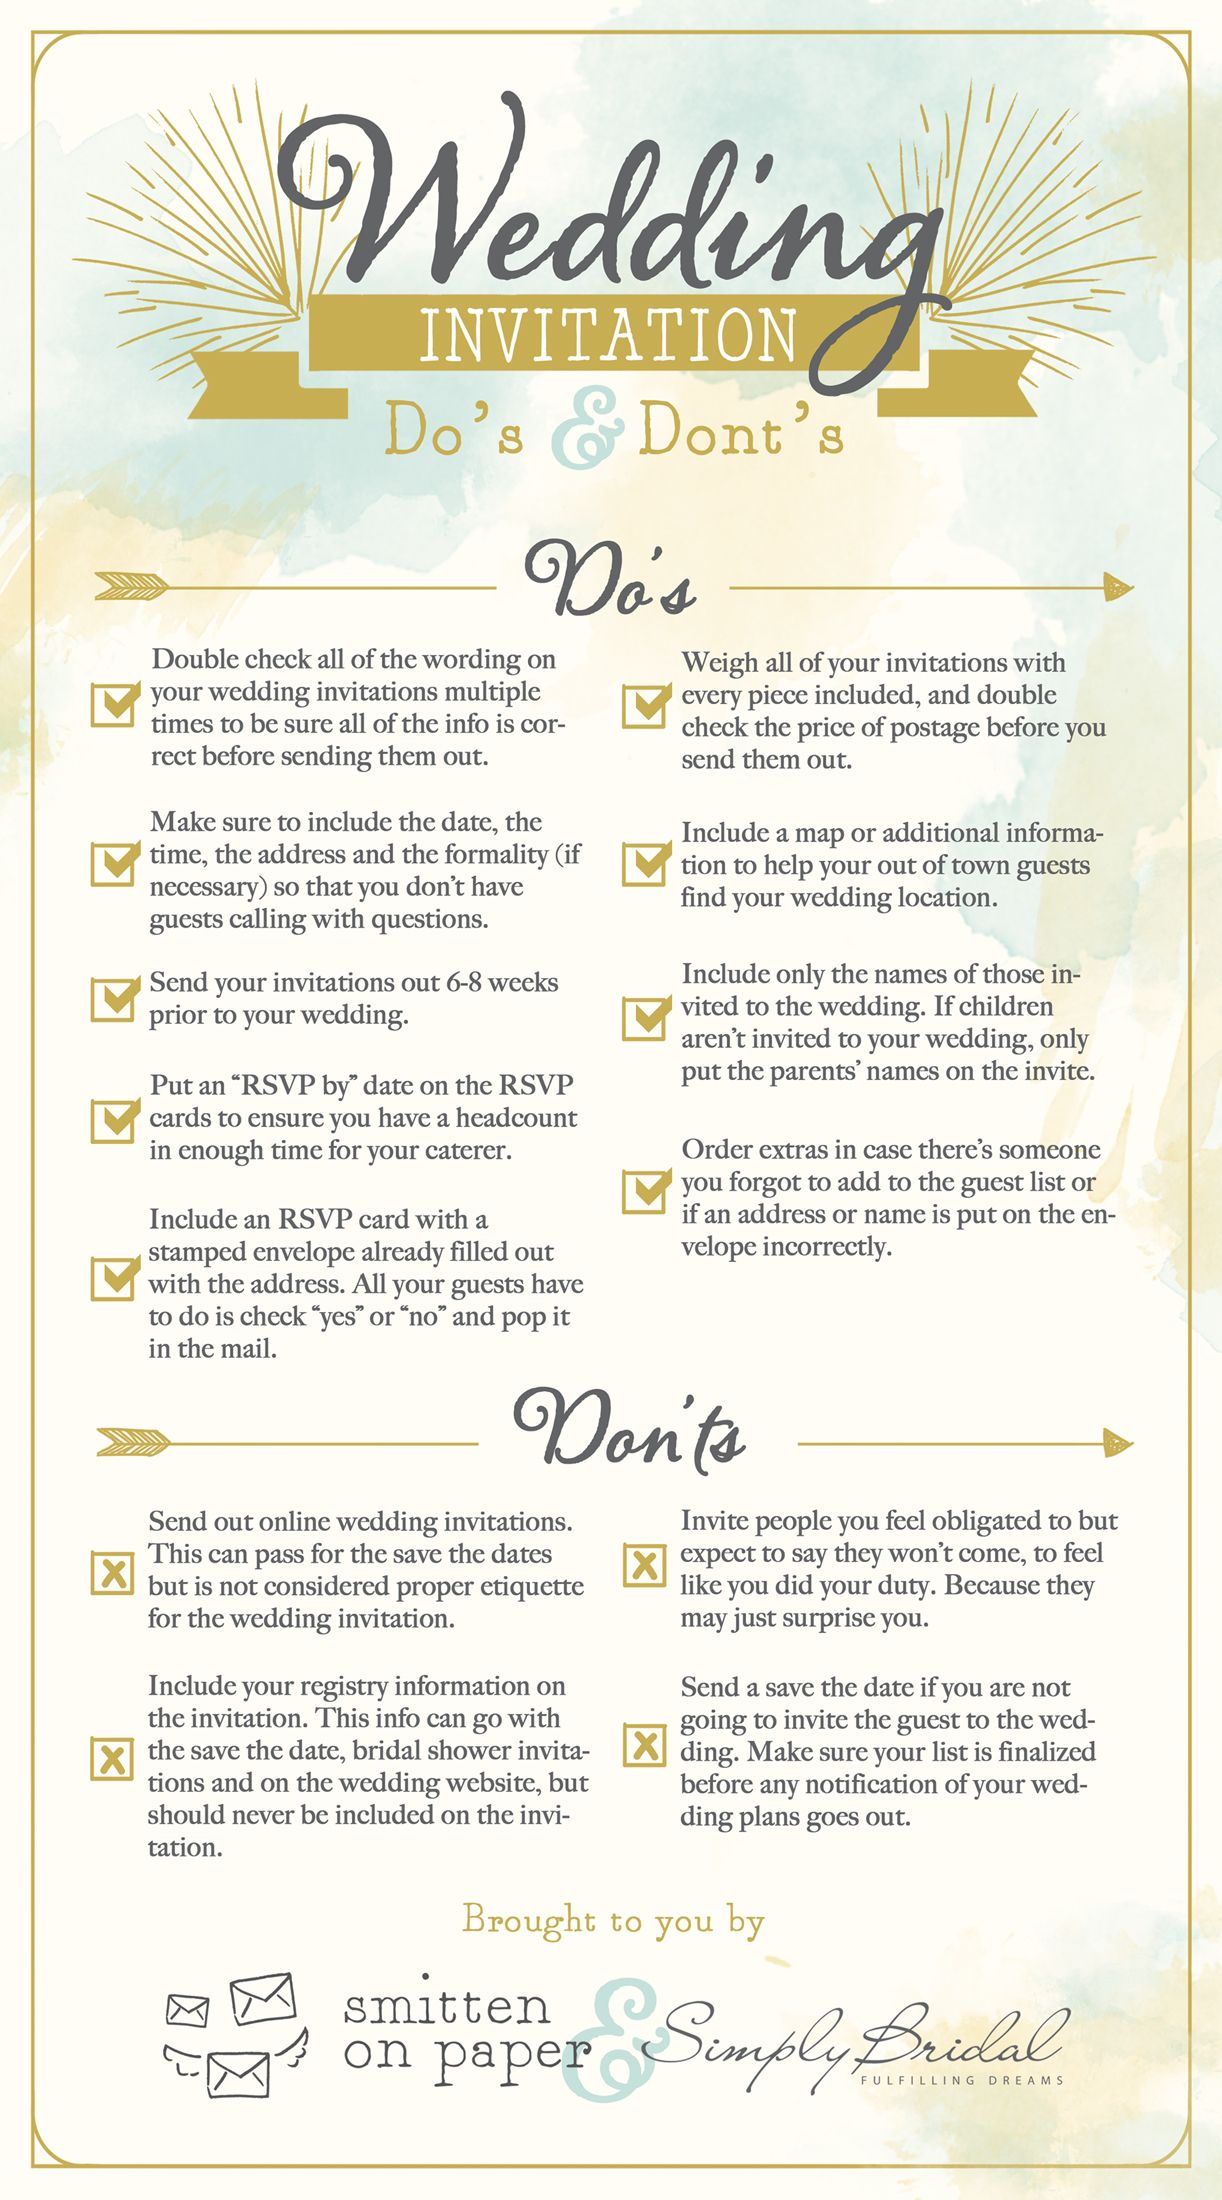 6 Super Helpful Wedding Invitation Checklists | Wedding invitation ...